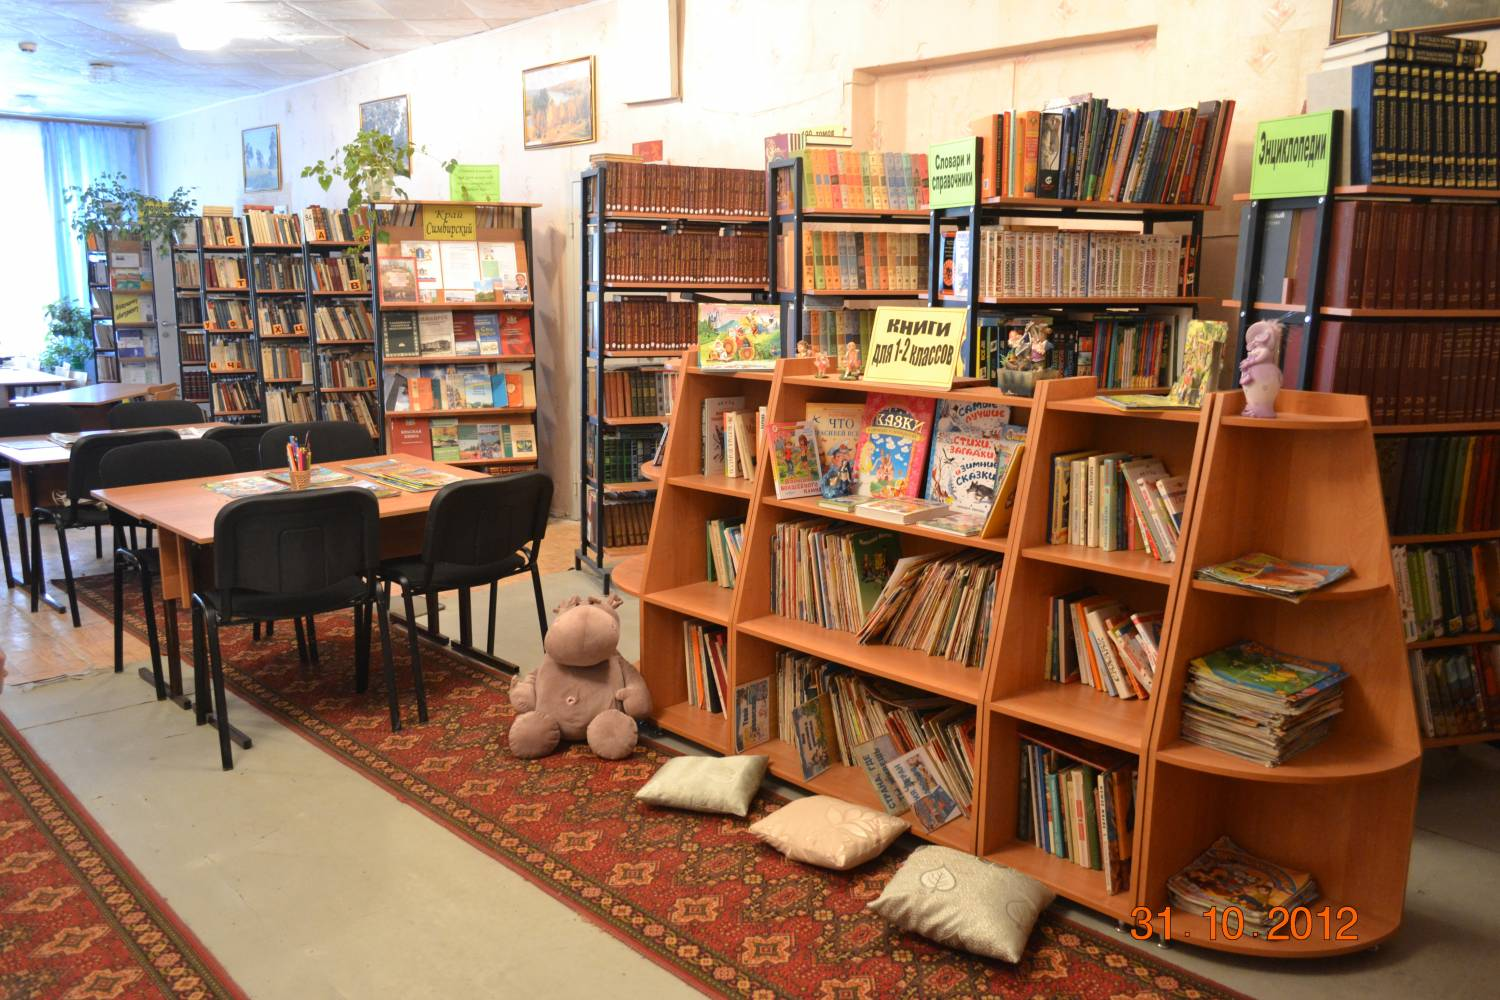 short essay on school library A school without a library is unthinkable these days it must have books on  various subjects, newspapers, journals and magazines.